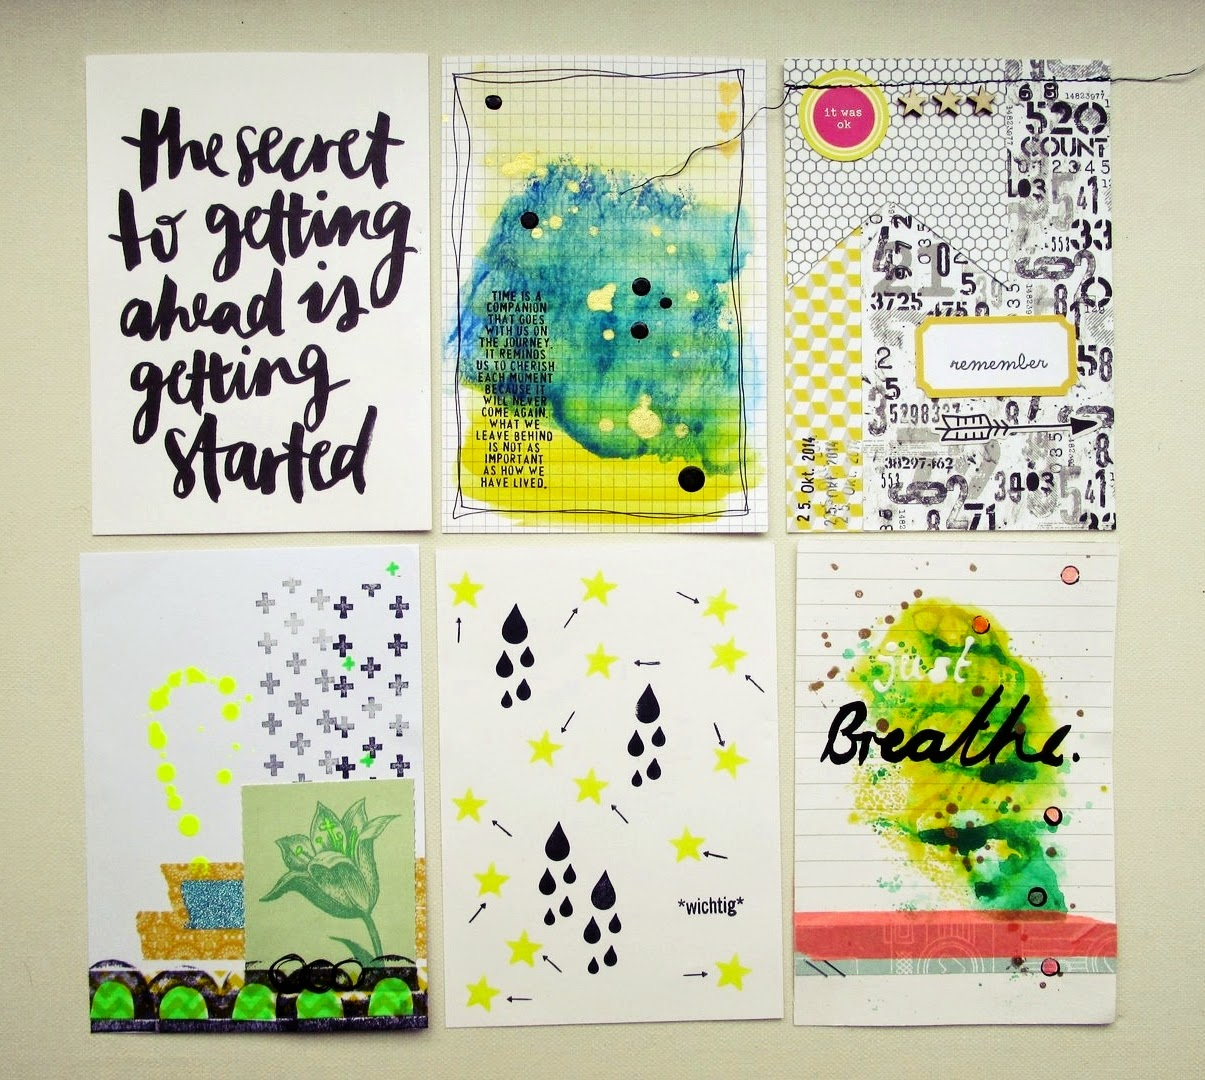 http://danipeuss.blogspot.com/2015/02/awesome-phrase-cards-atcs-mitmachmontag.html